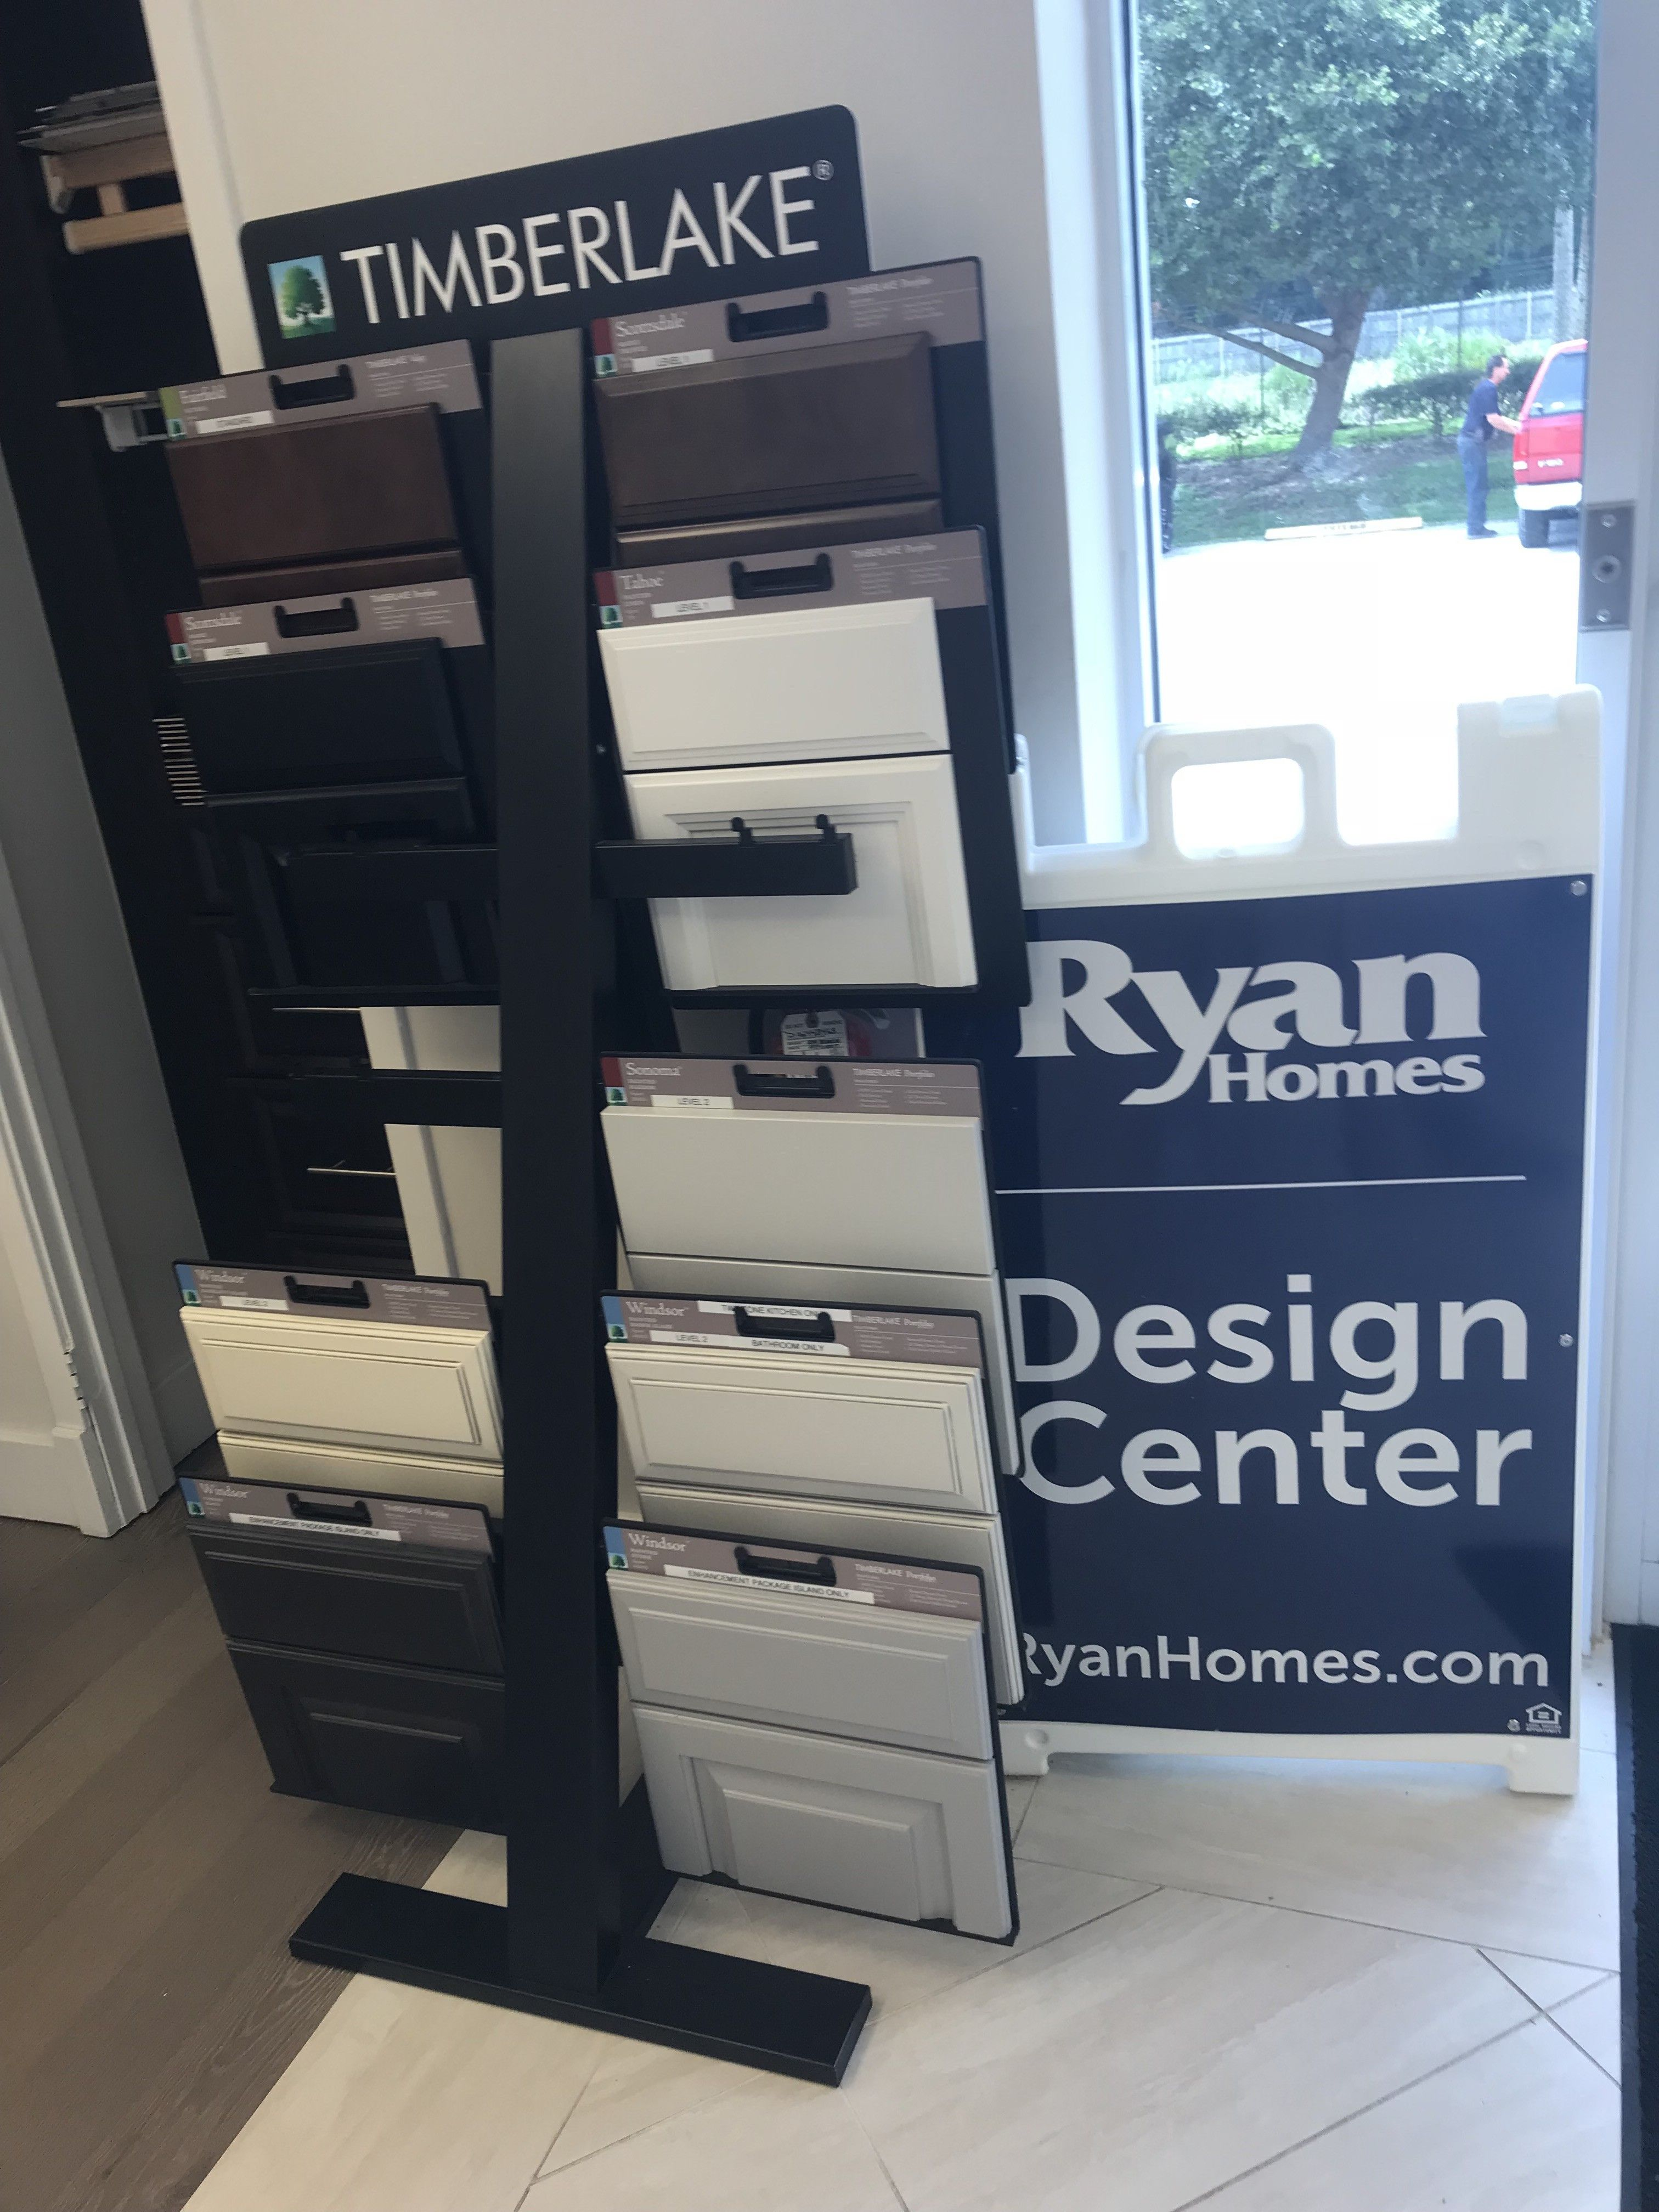 Our Experience At The Ryan Homes Design Center Home Building Tips Ryan Homes House Siding Options